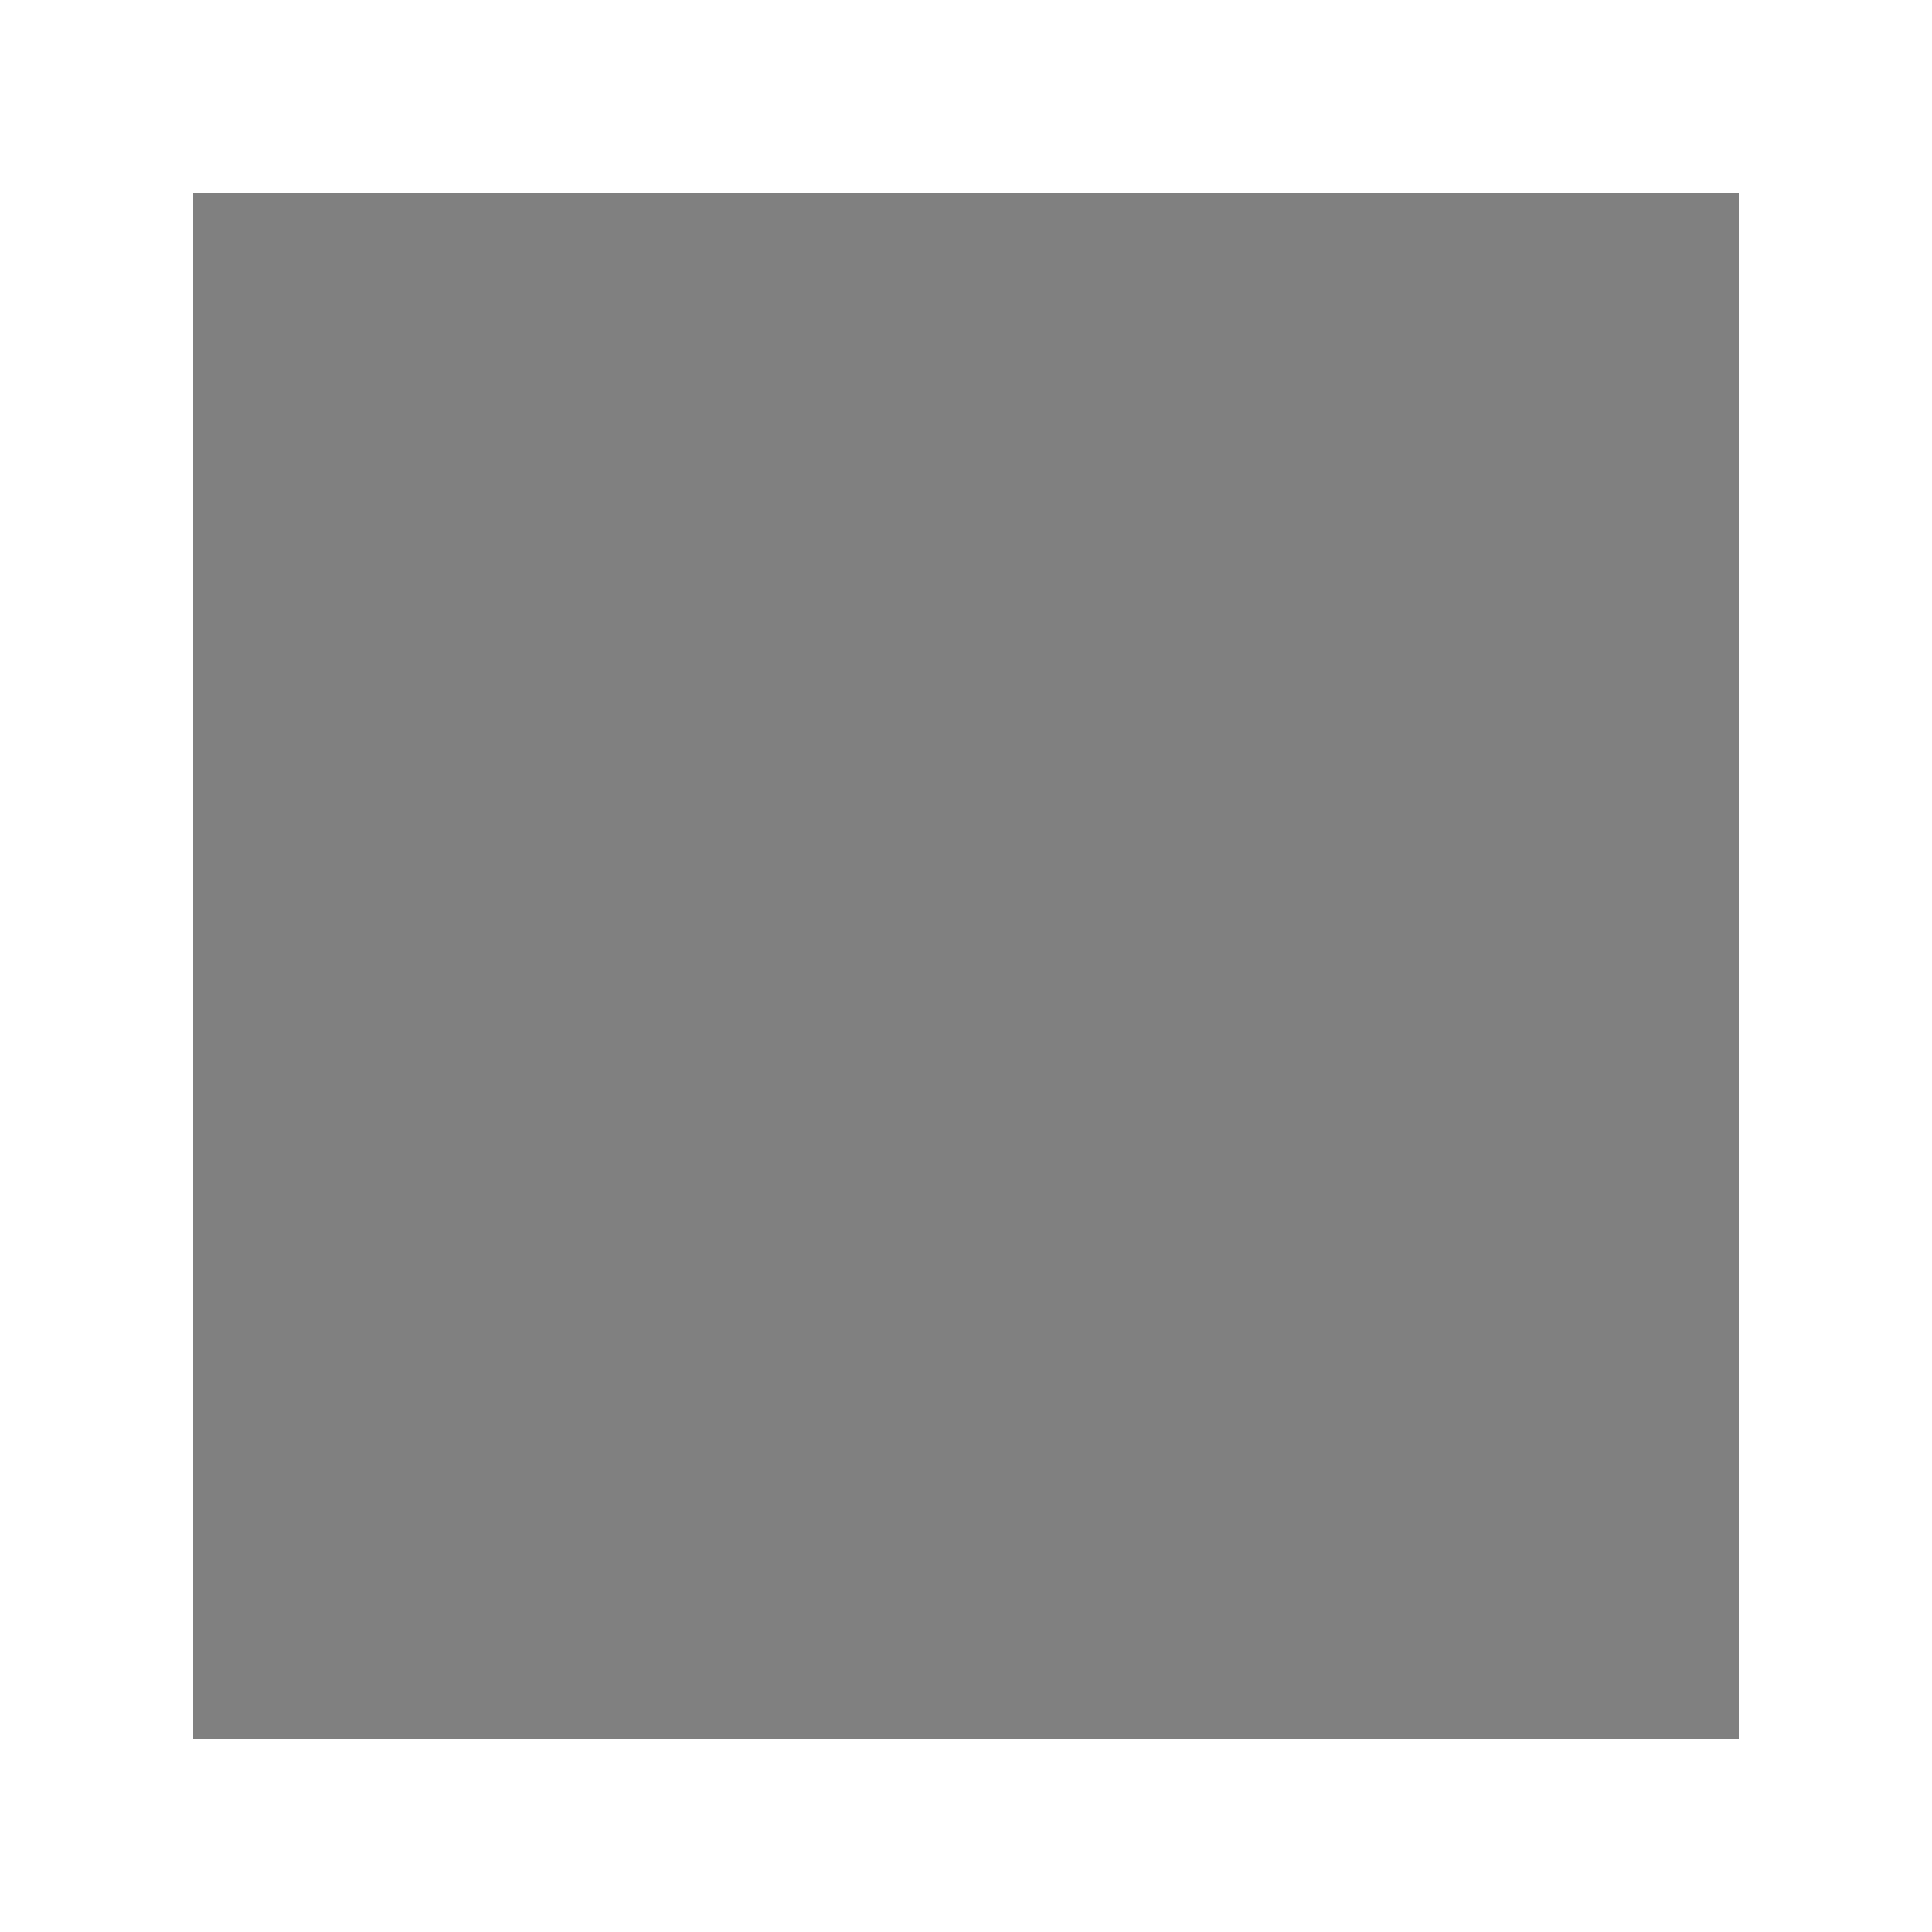 Transparent square png. File grey svg wikimedia